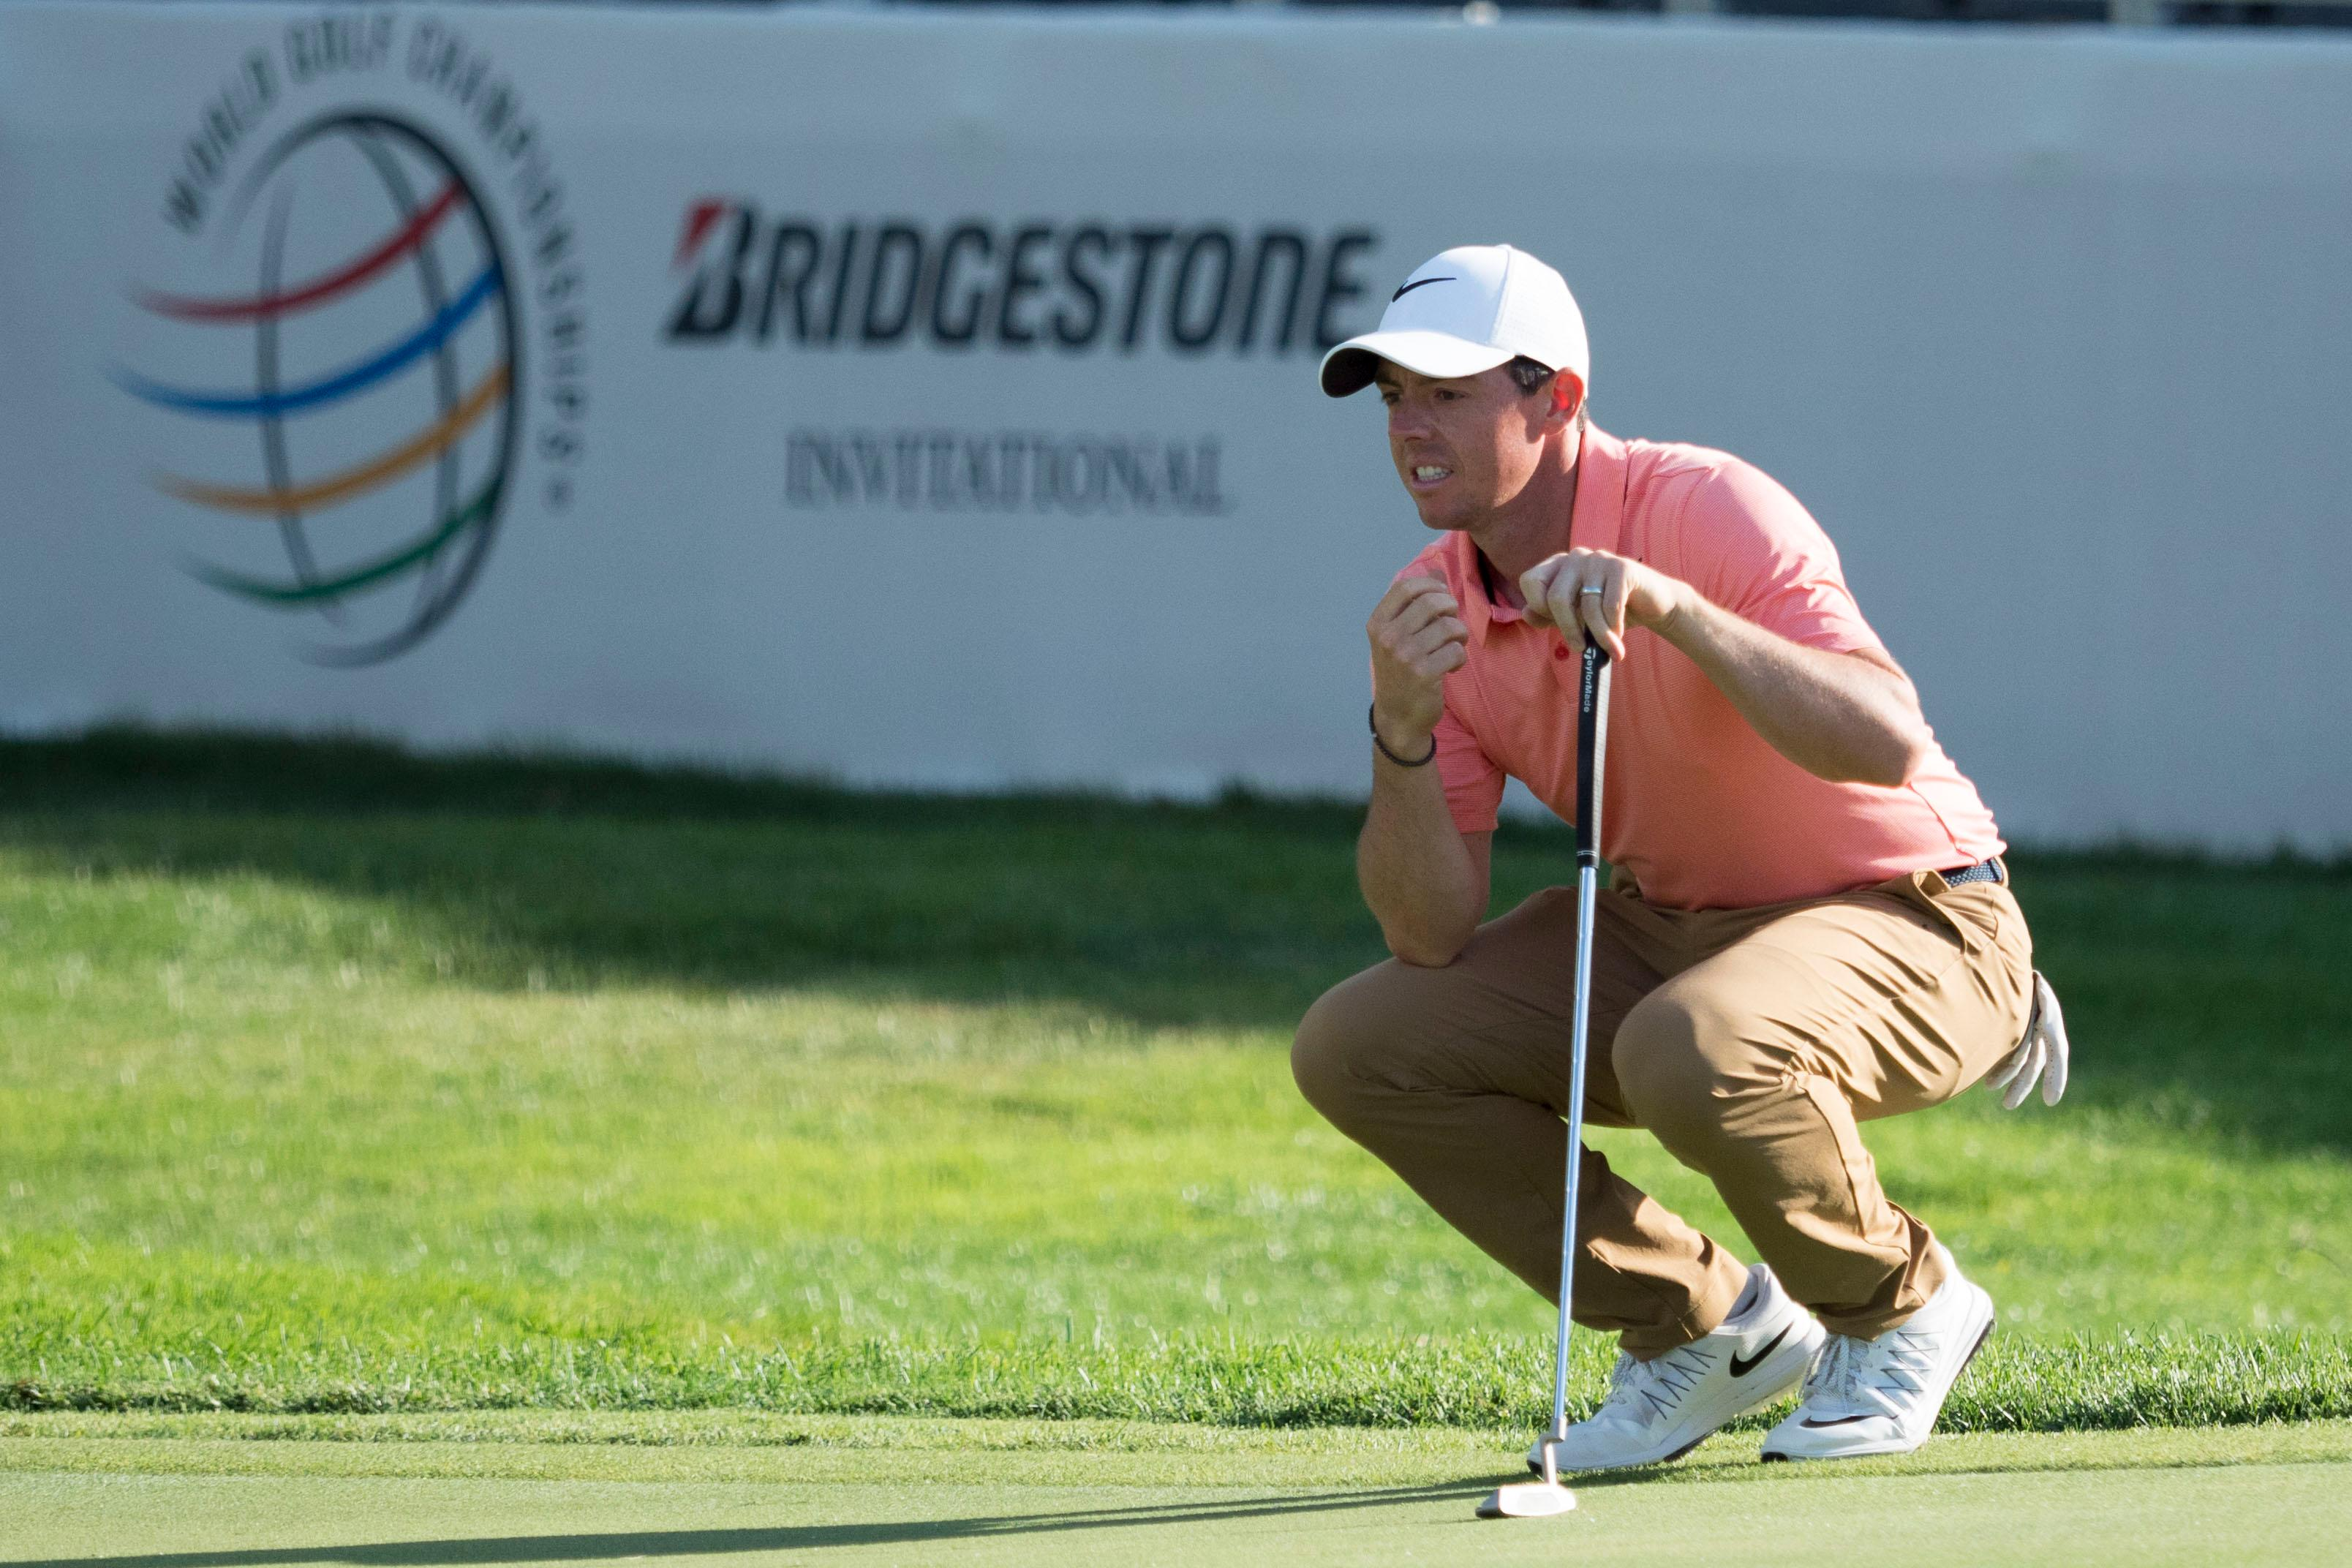 Consistency Key For McIlroy